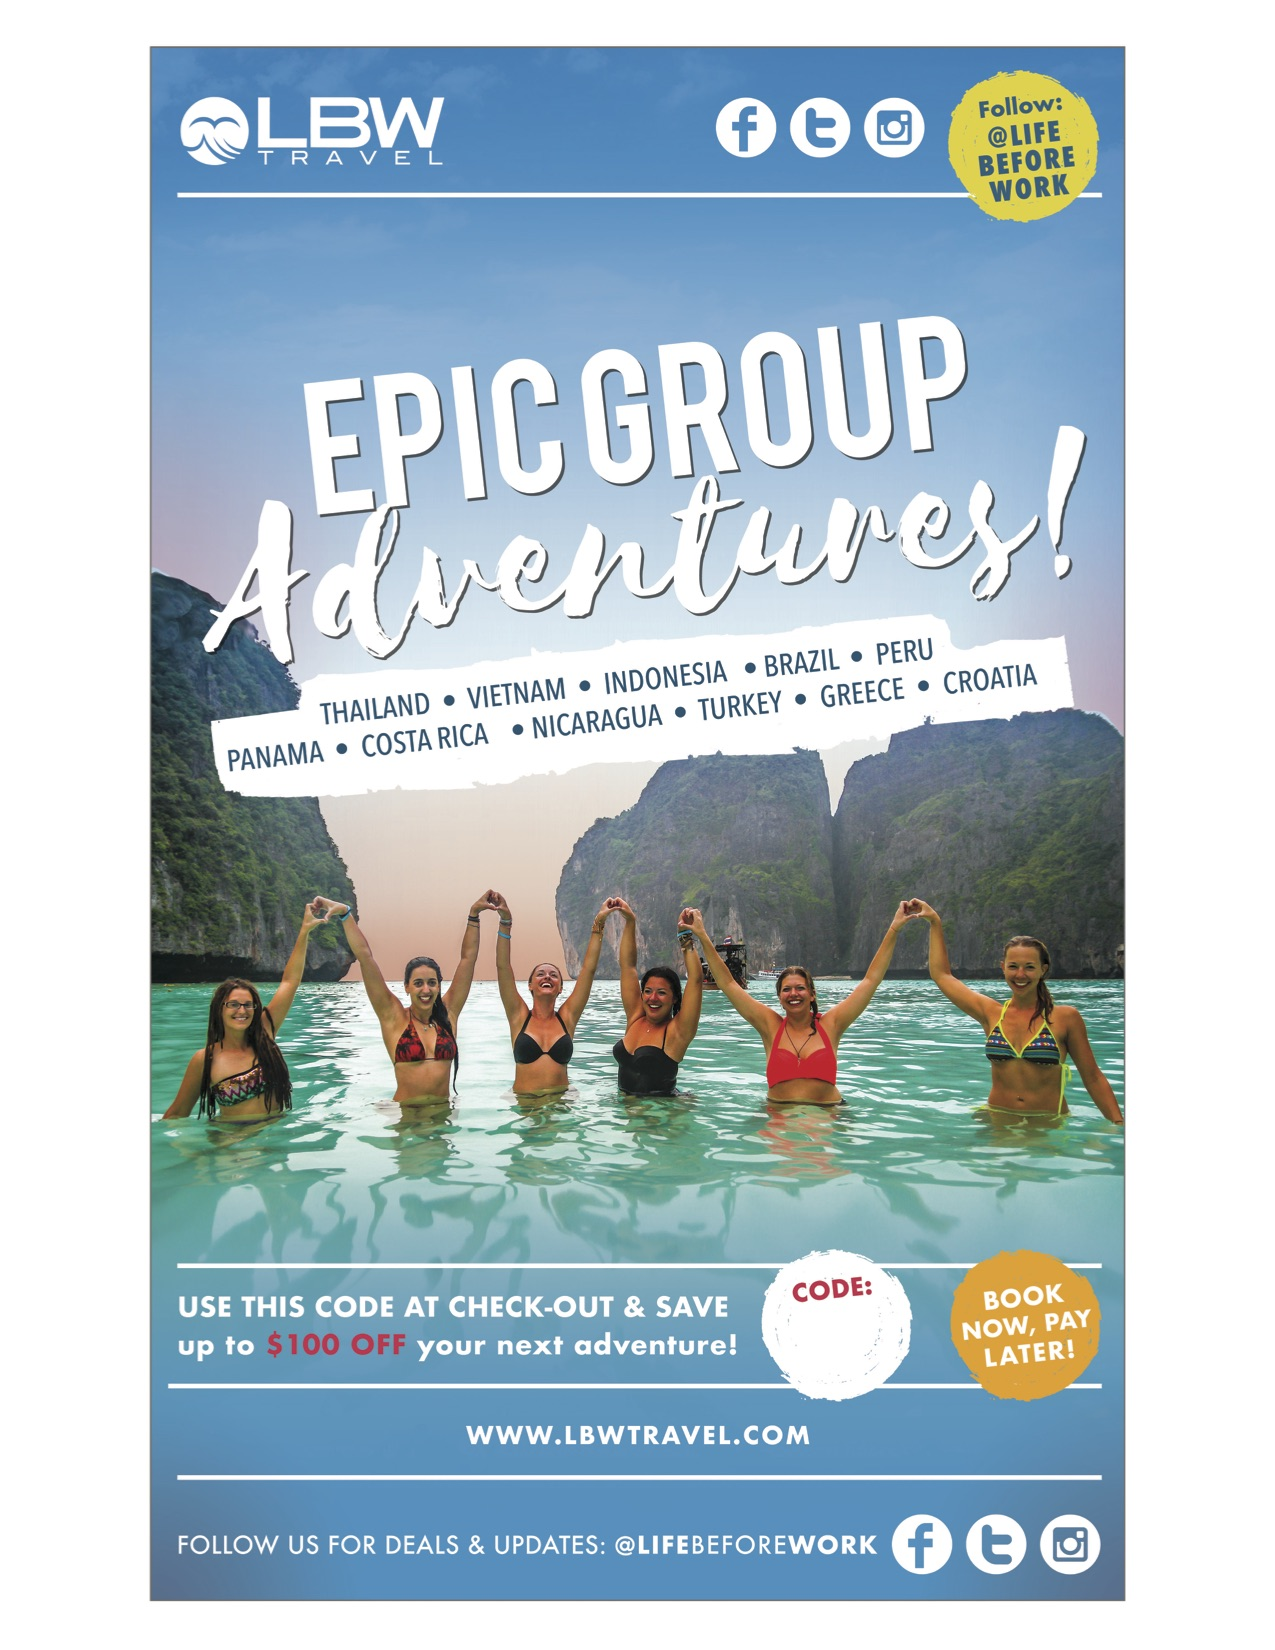 For a chance to WIN a FREE trip and receive up to $100 off on a amazing trip with Life Before Work Travel    CLICK HERE    or click the image above and use the promo code  RIDEORFLY  when you book a trip. DOOO IT ! :).